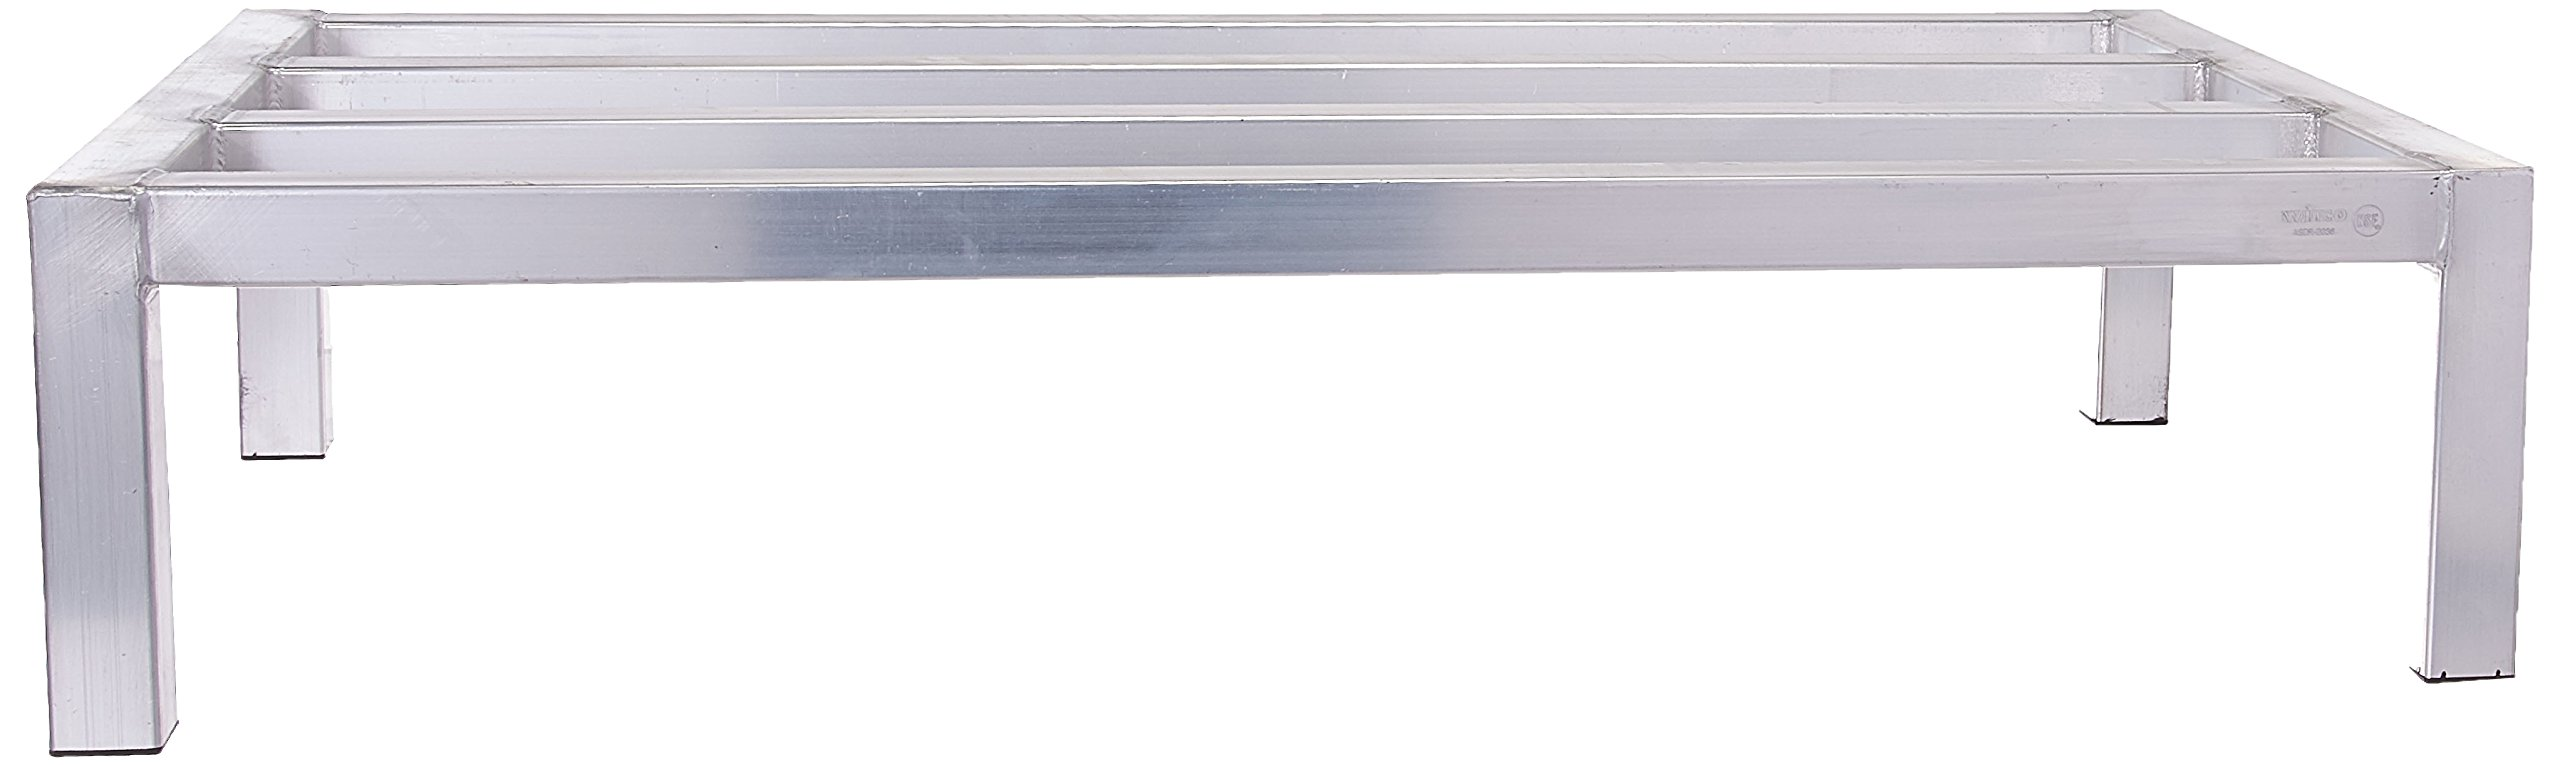 Winco ASDR-2036 20-Inch by 36-Inch Dunnage Rack, 8-Inch High, 1800-Pound Capacity